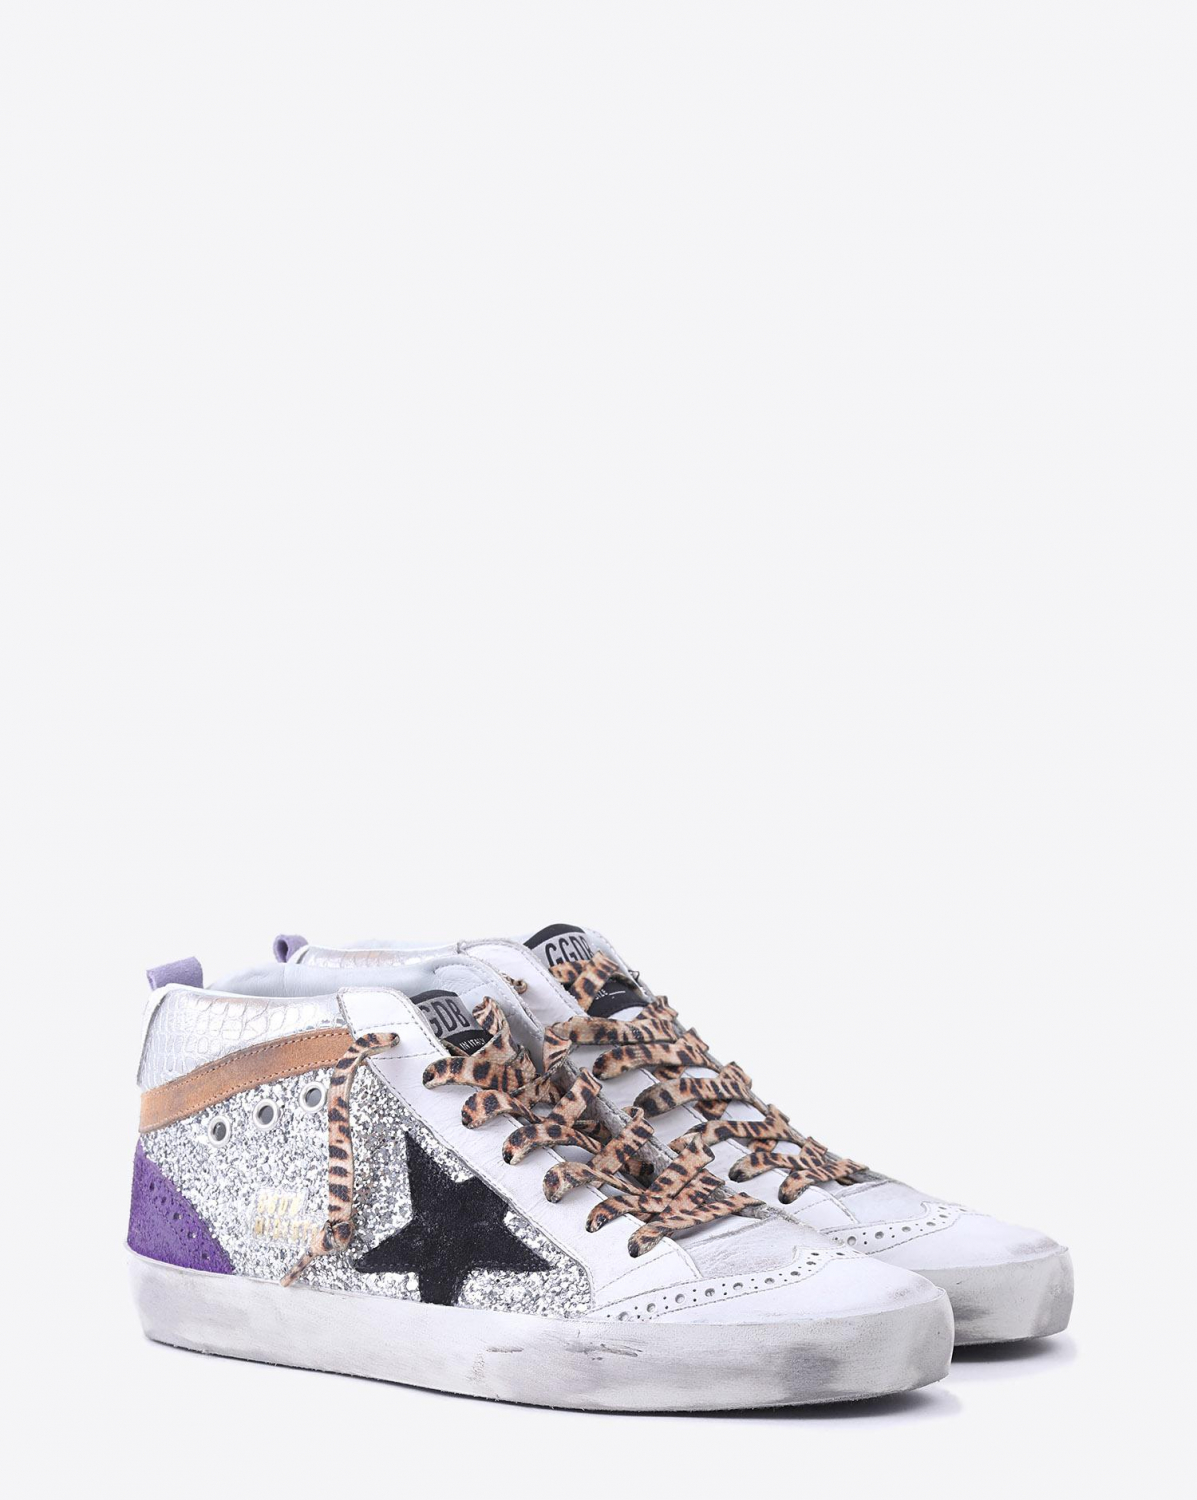 Golden Goose Woman Collection Sneakers Mid Star - White Nabuk - Silver Glitter - Leopard Lace